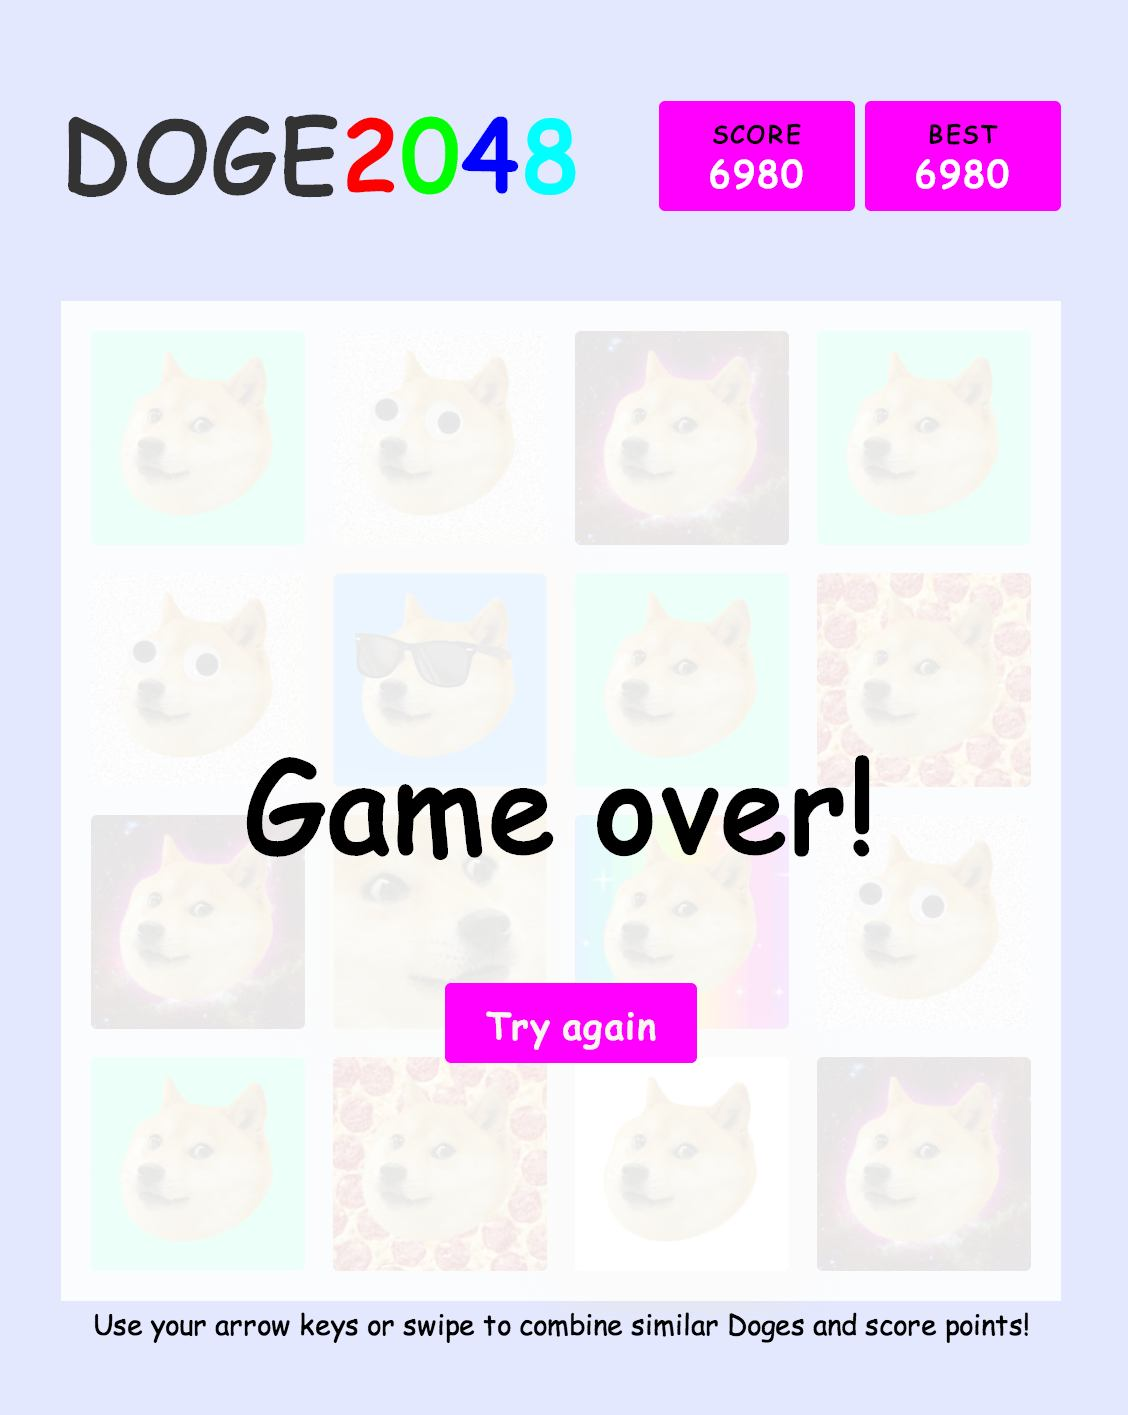 Doge2048 game